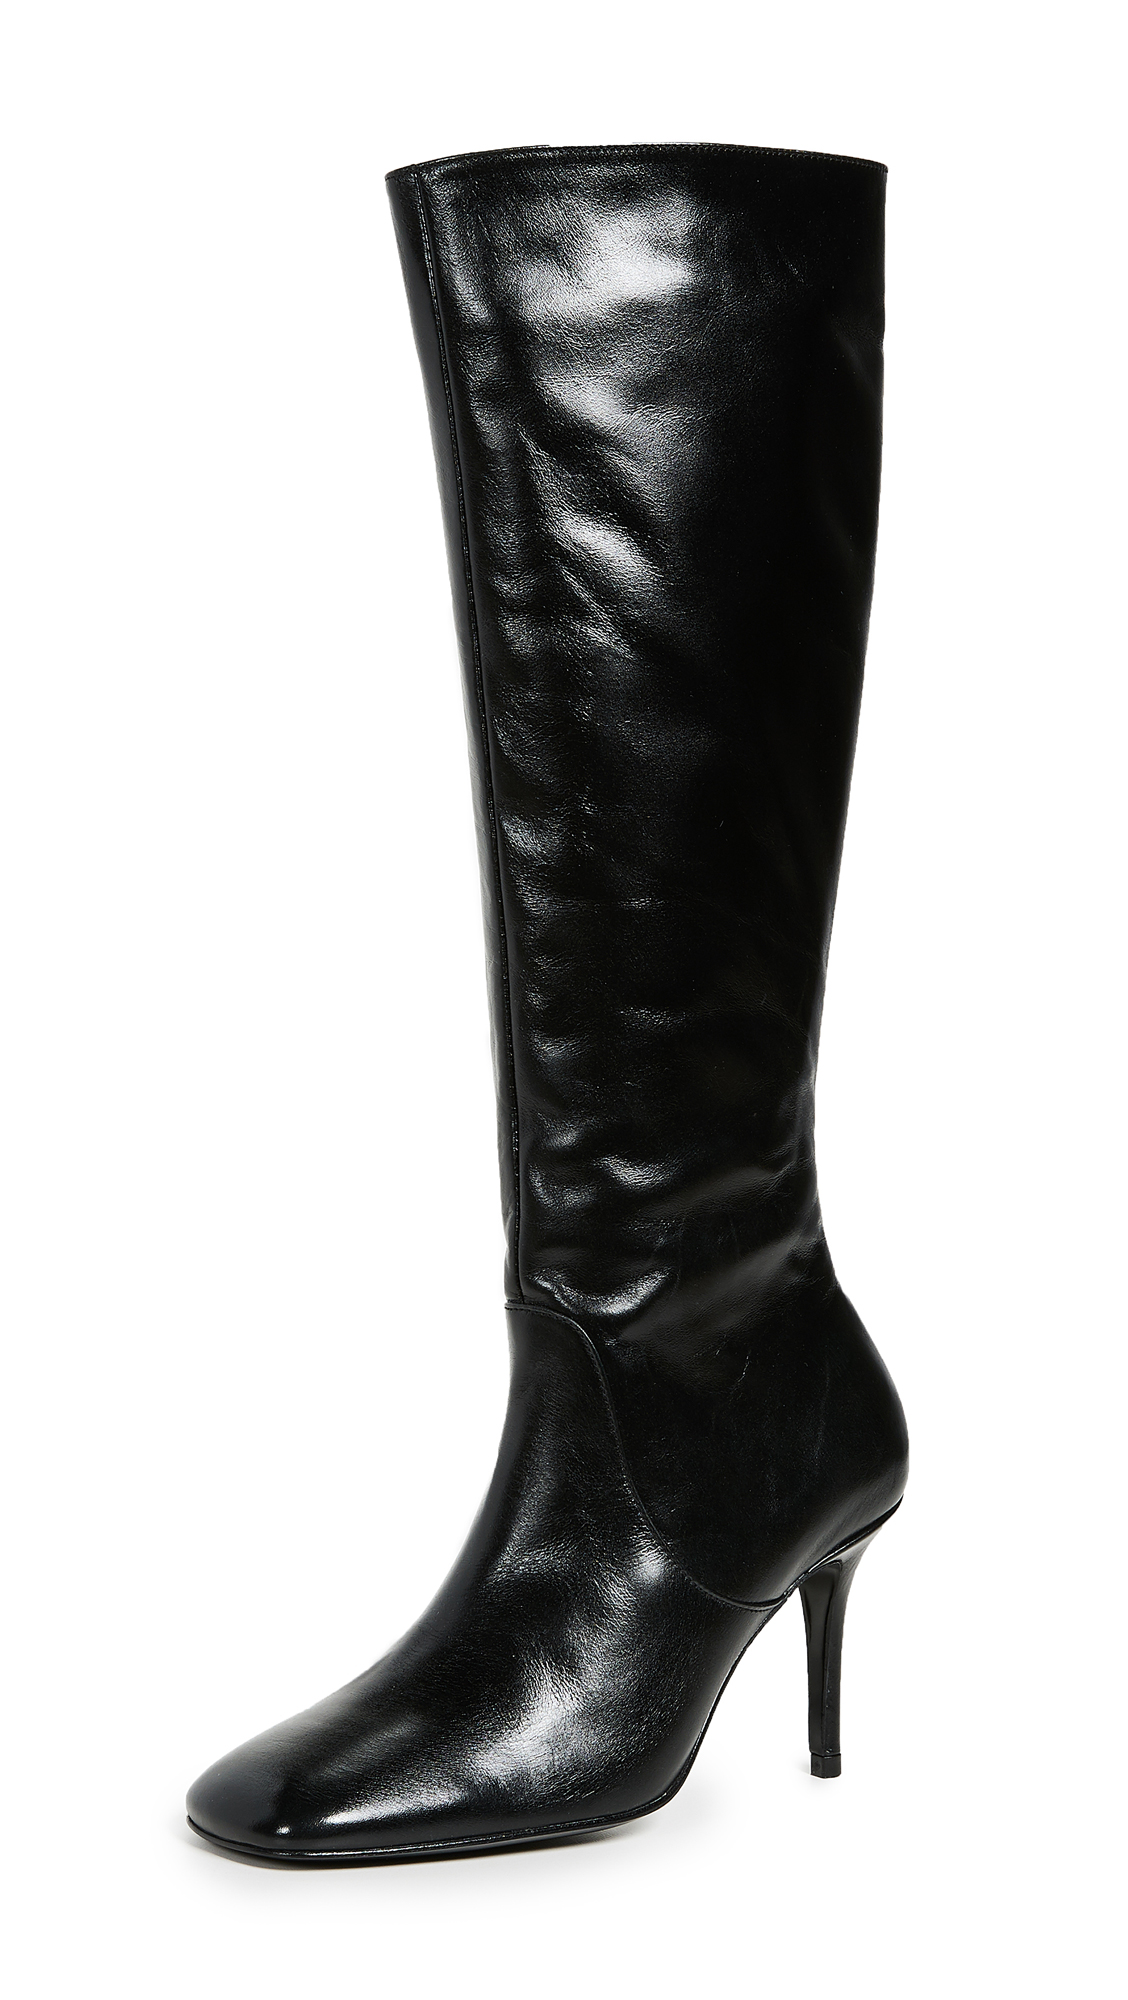 Dorateymur Town & Country Tall Boots - Black